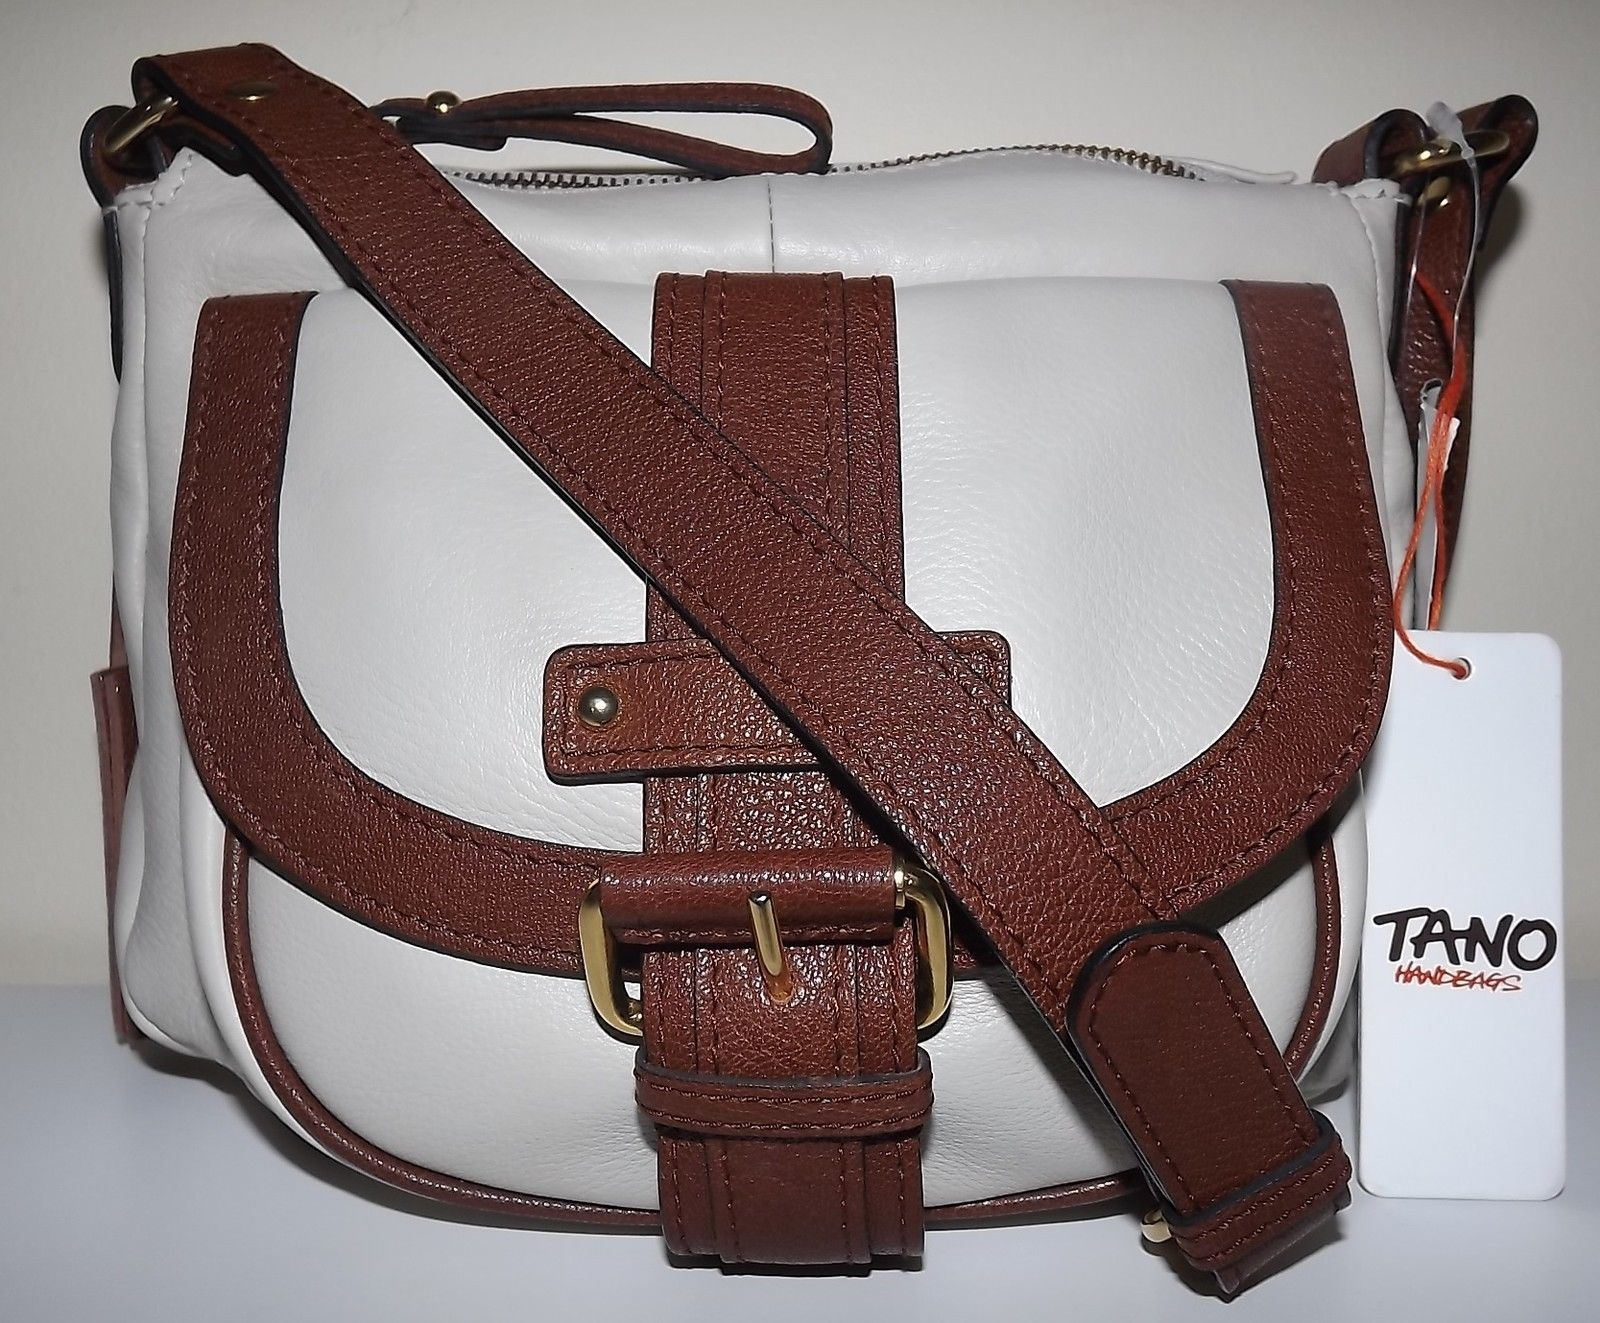 acafe6e7b048 New Tano Handbags Leather Top Zip Crossbody and similar items